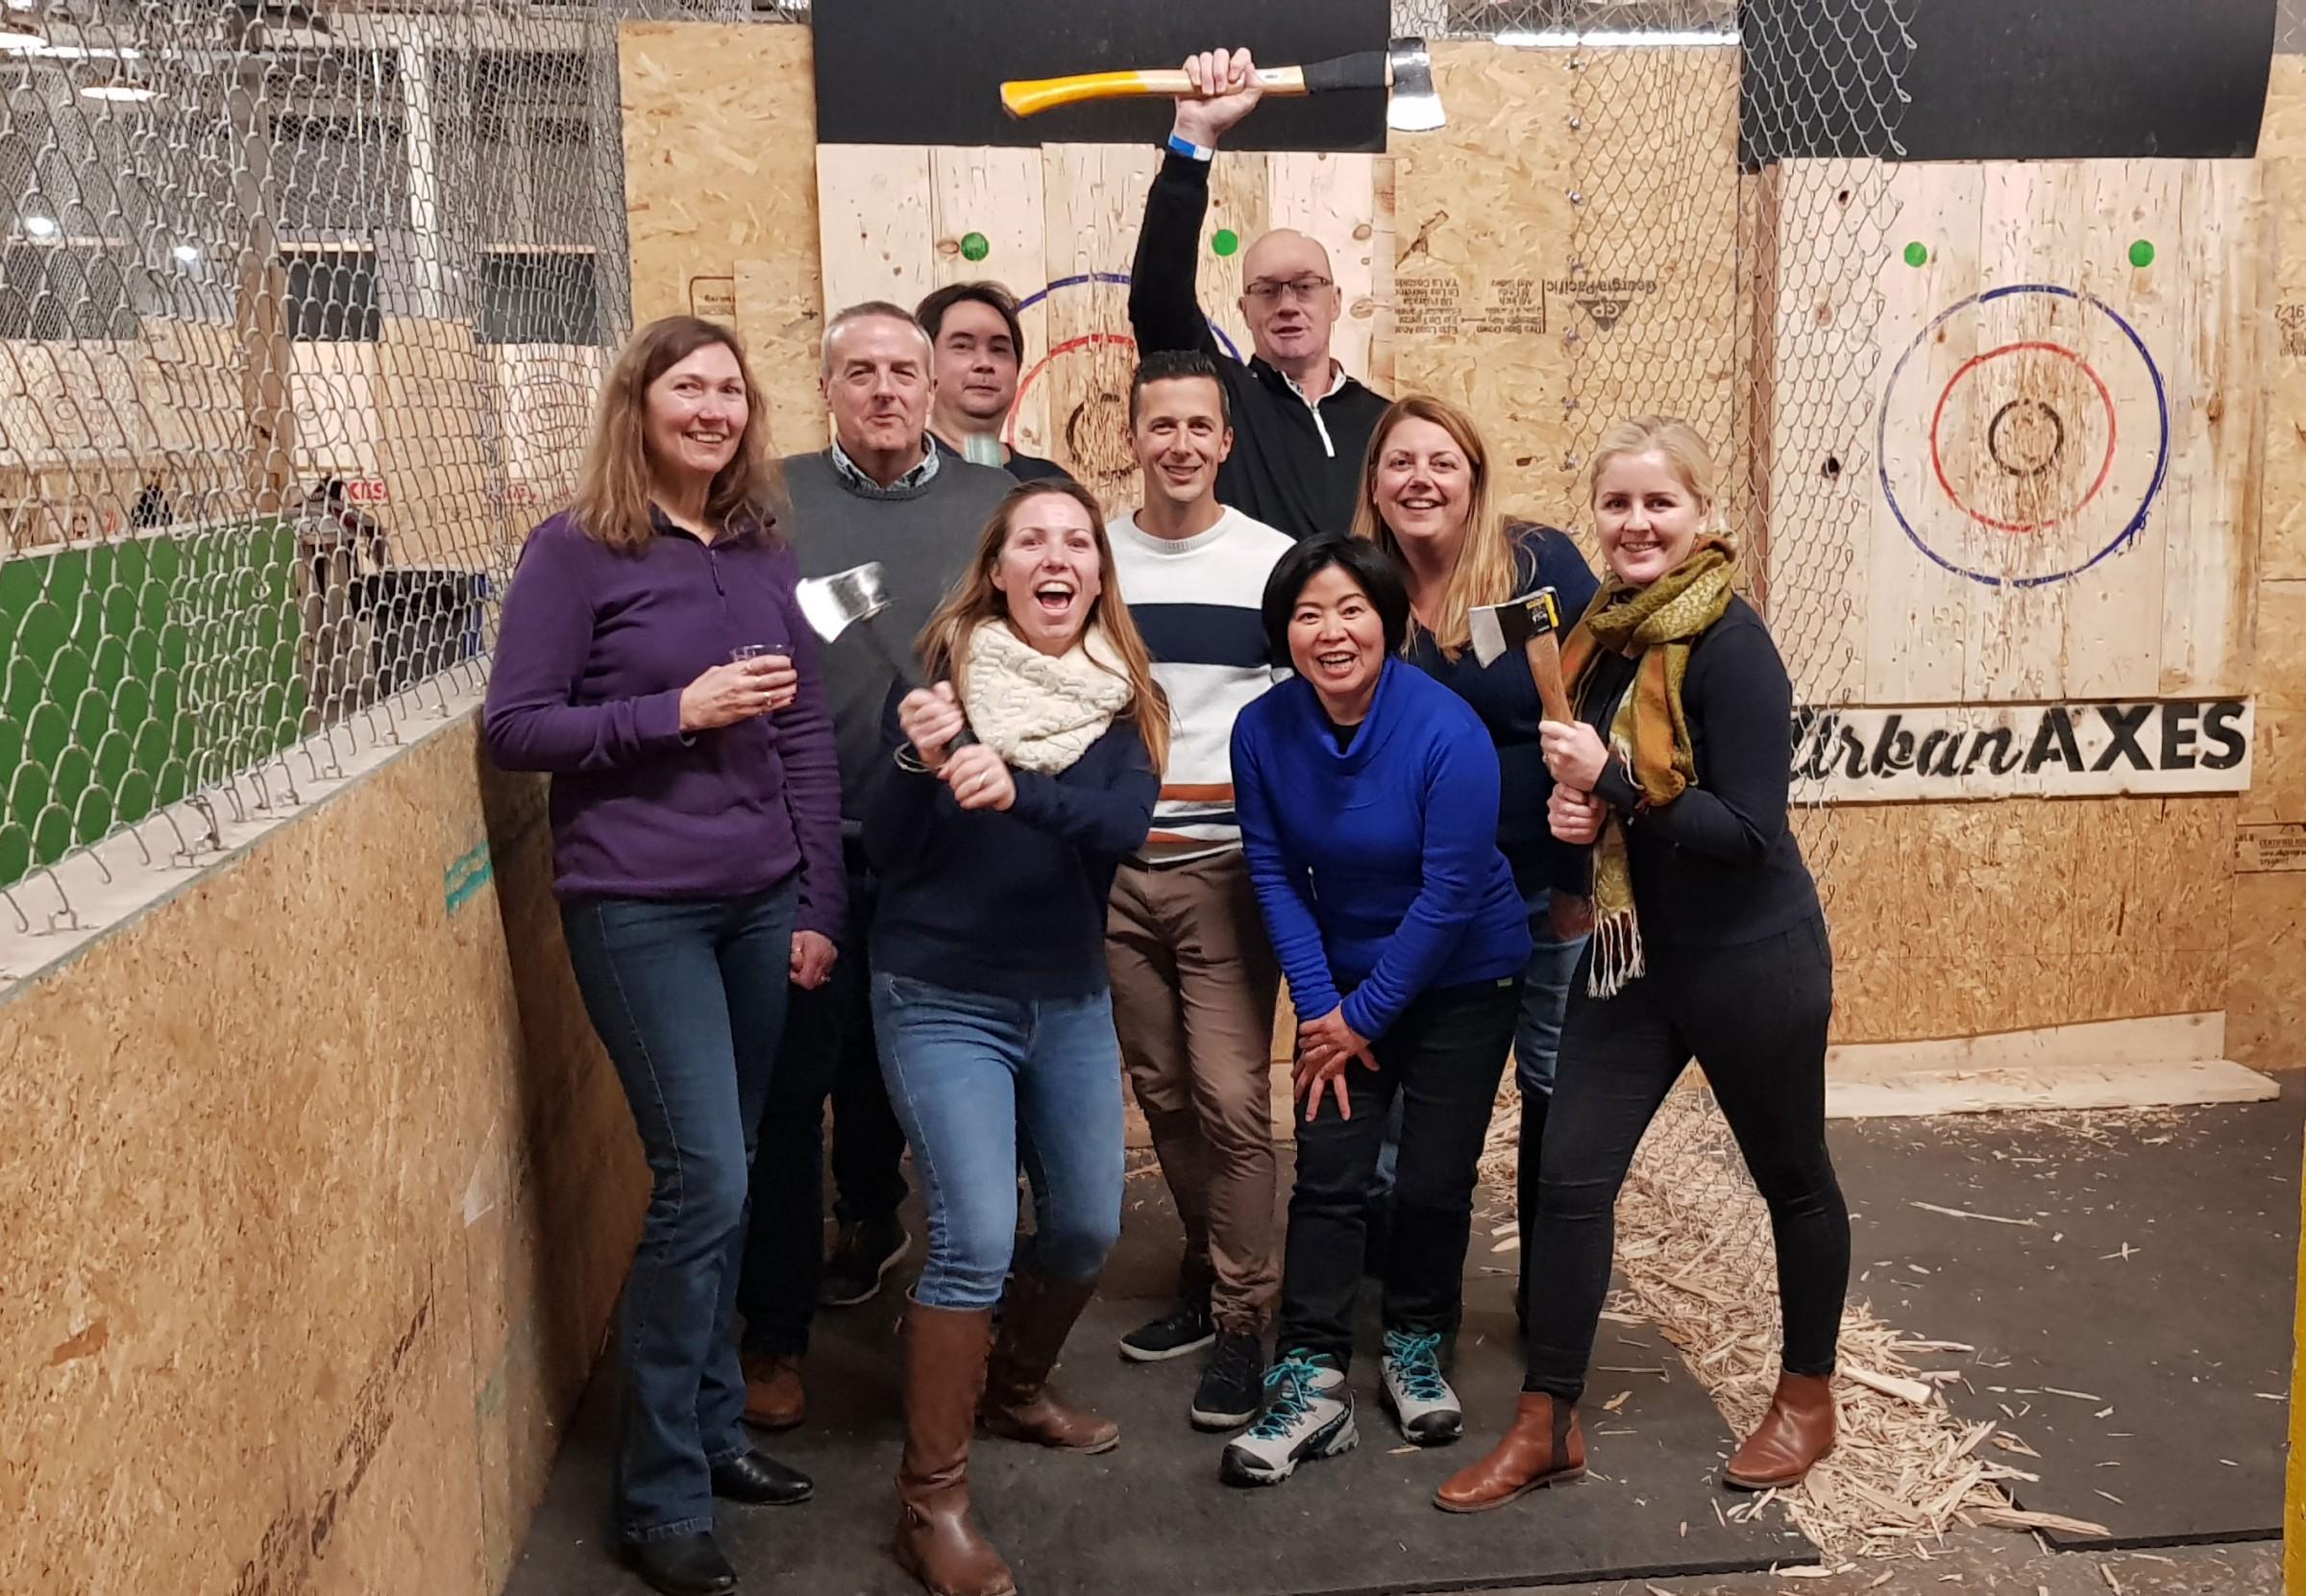 Primo and team axe throwing